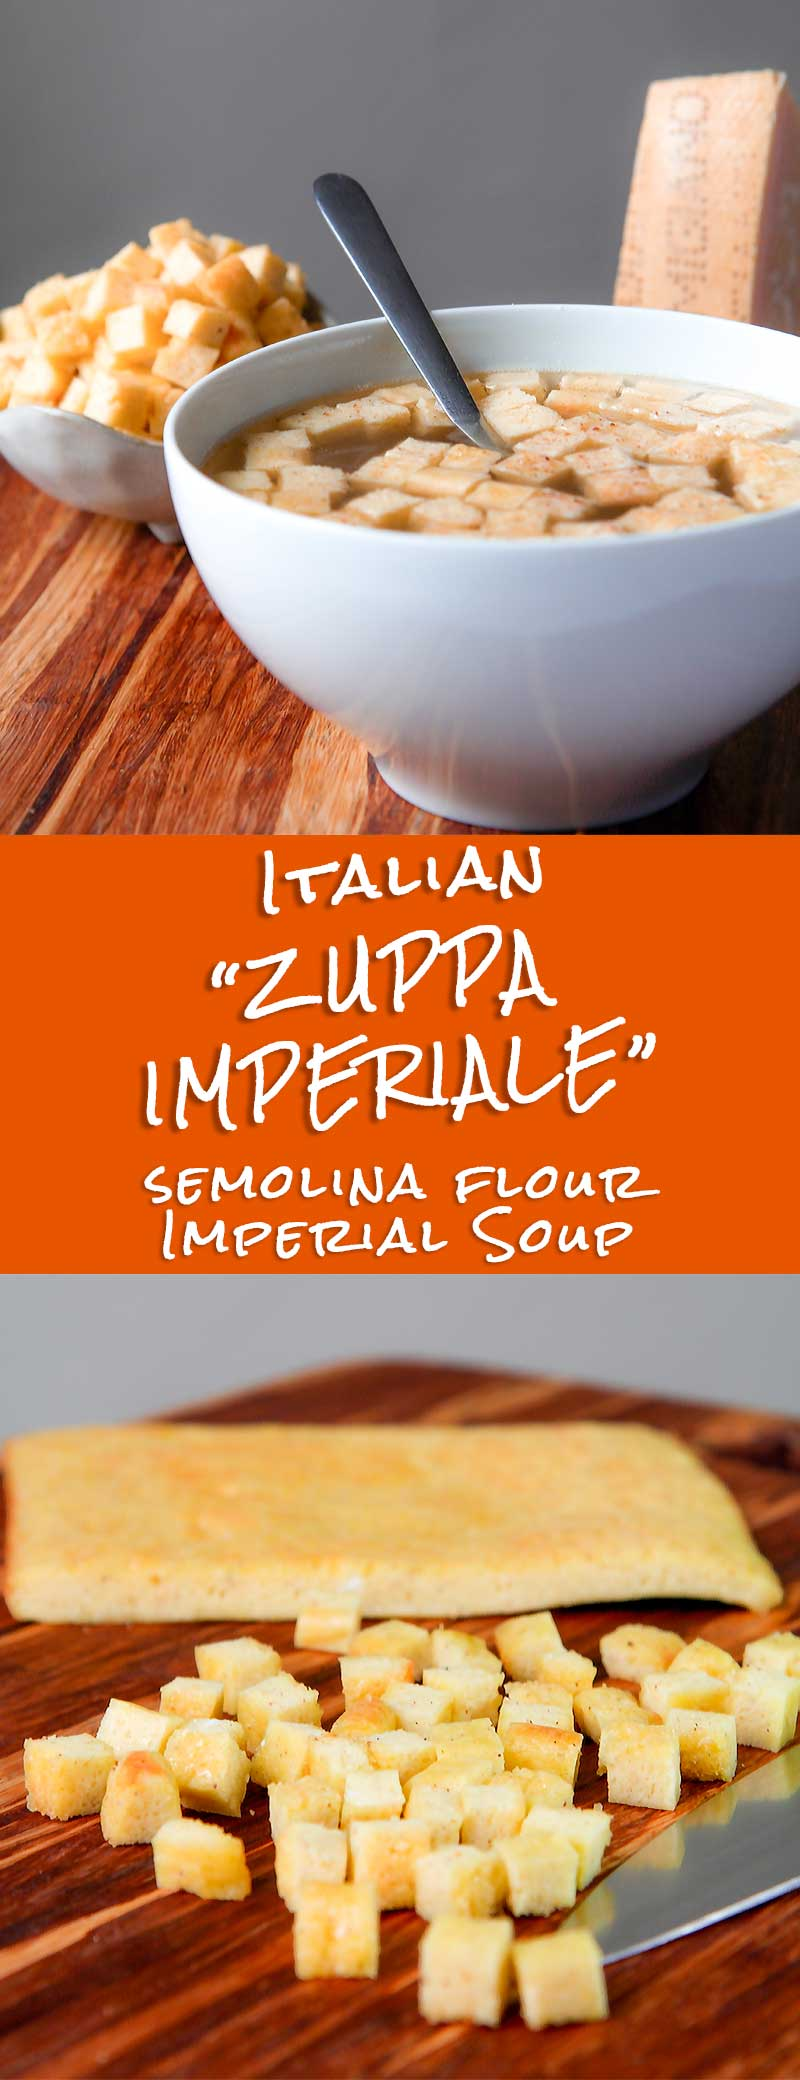 Imperial soup Bolognese traditional recipe: zuppa imperiale